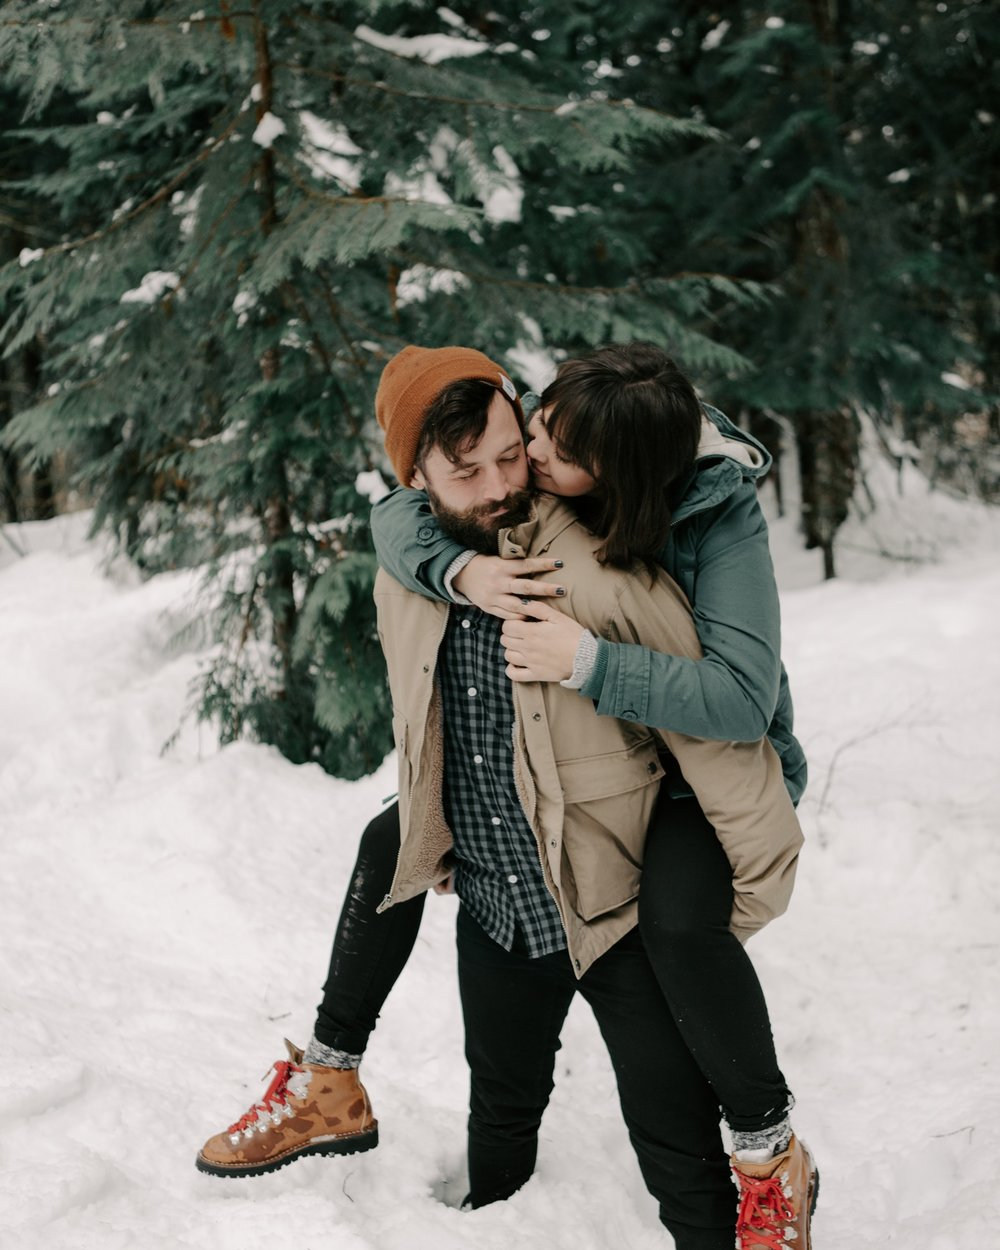 Cute+couples+snow+photoshoot+in+Leavenworth+Washington